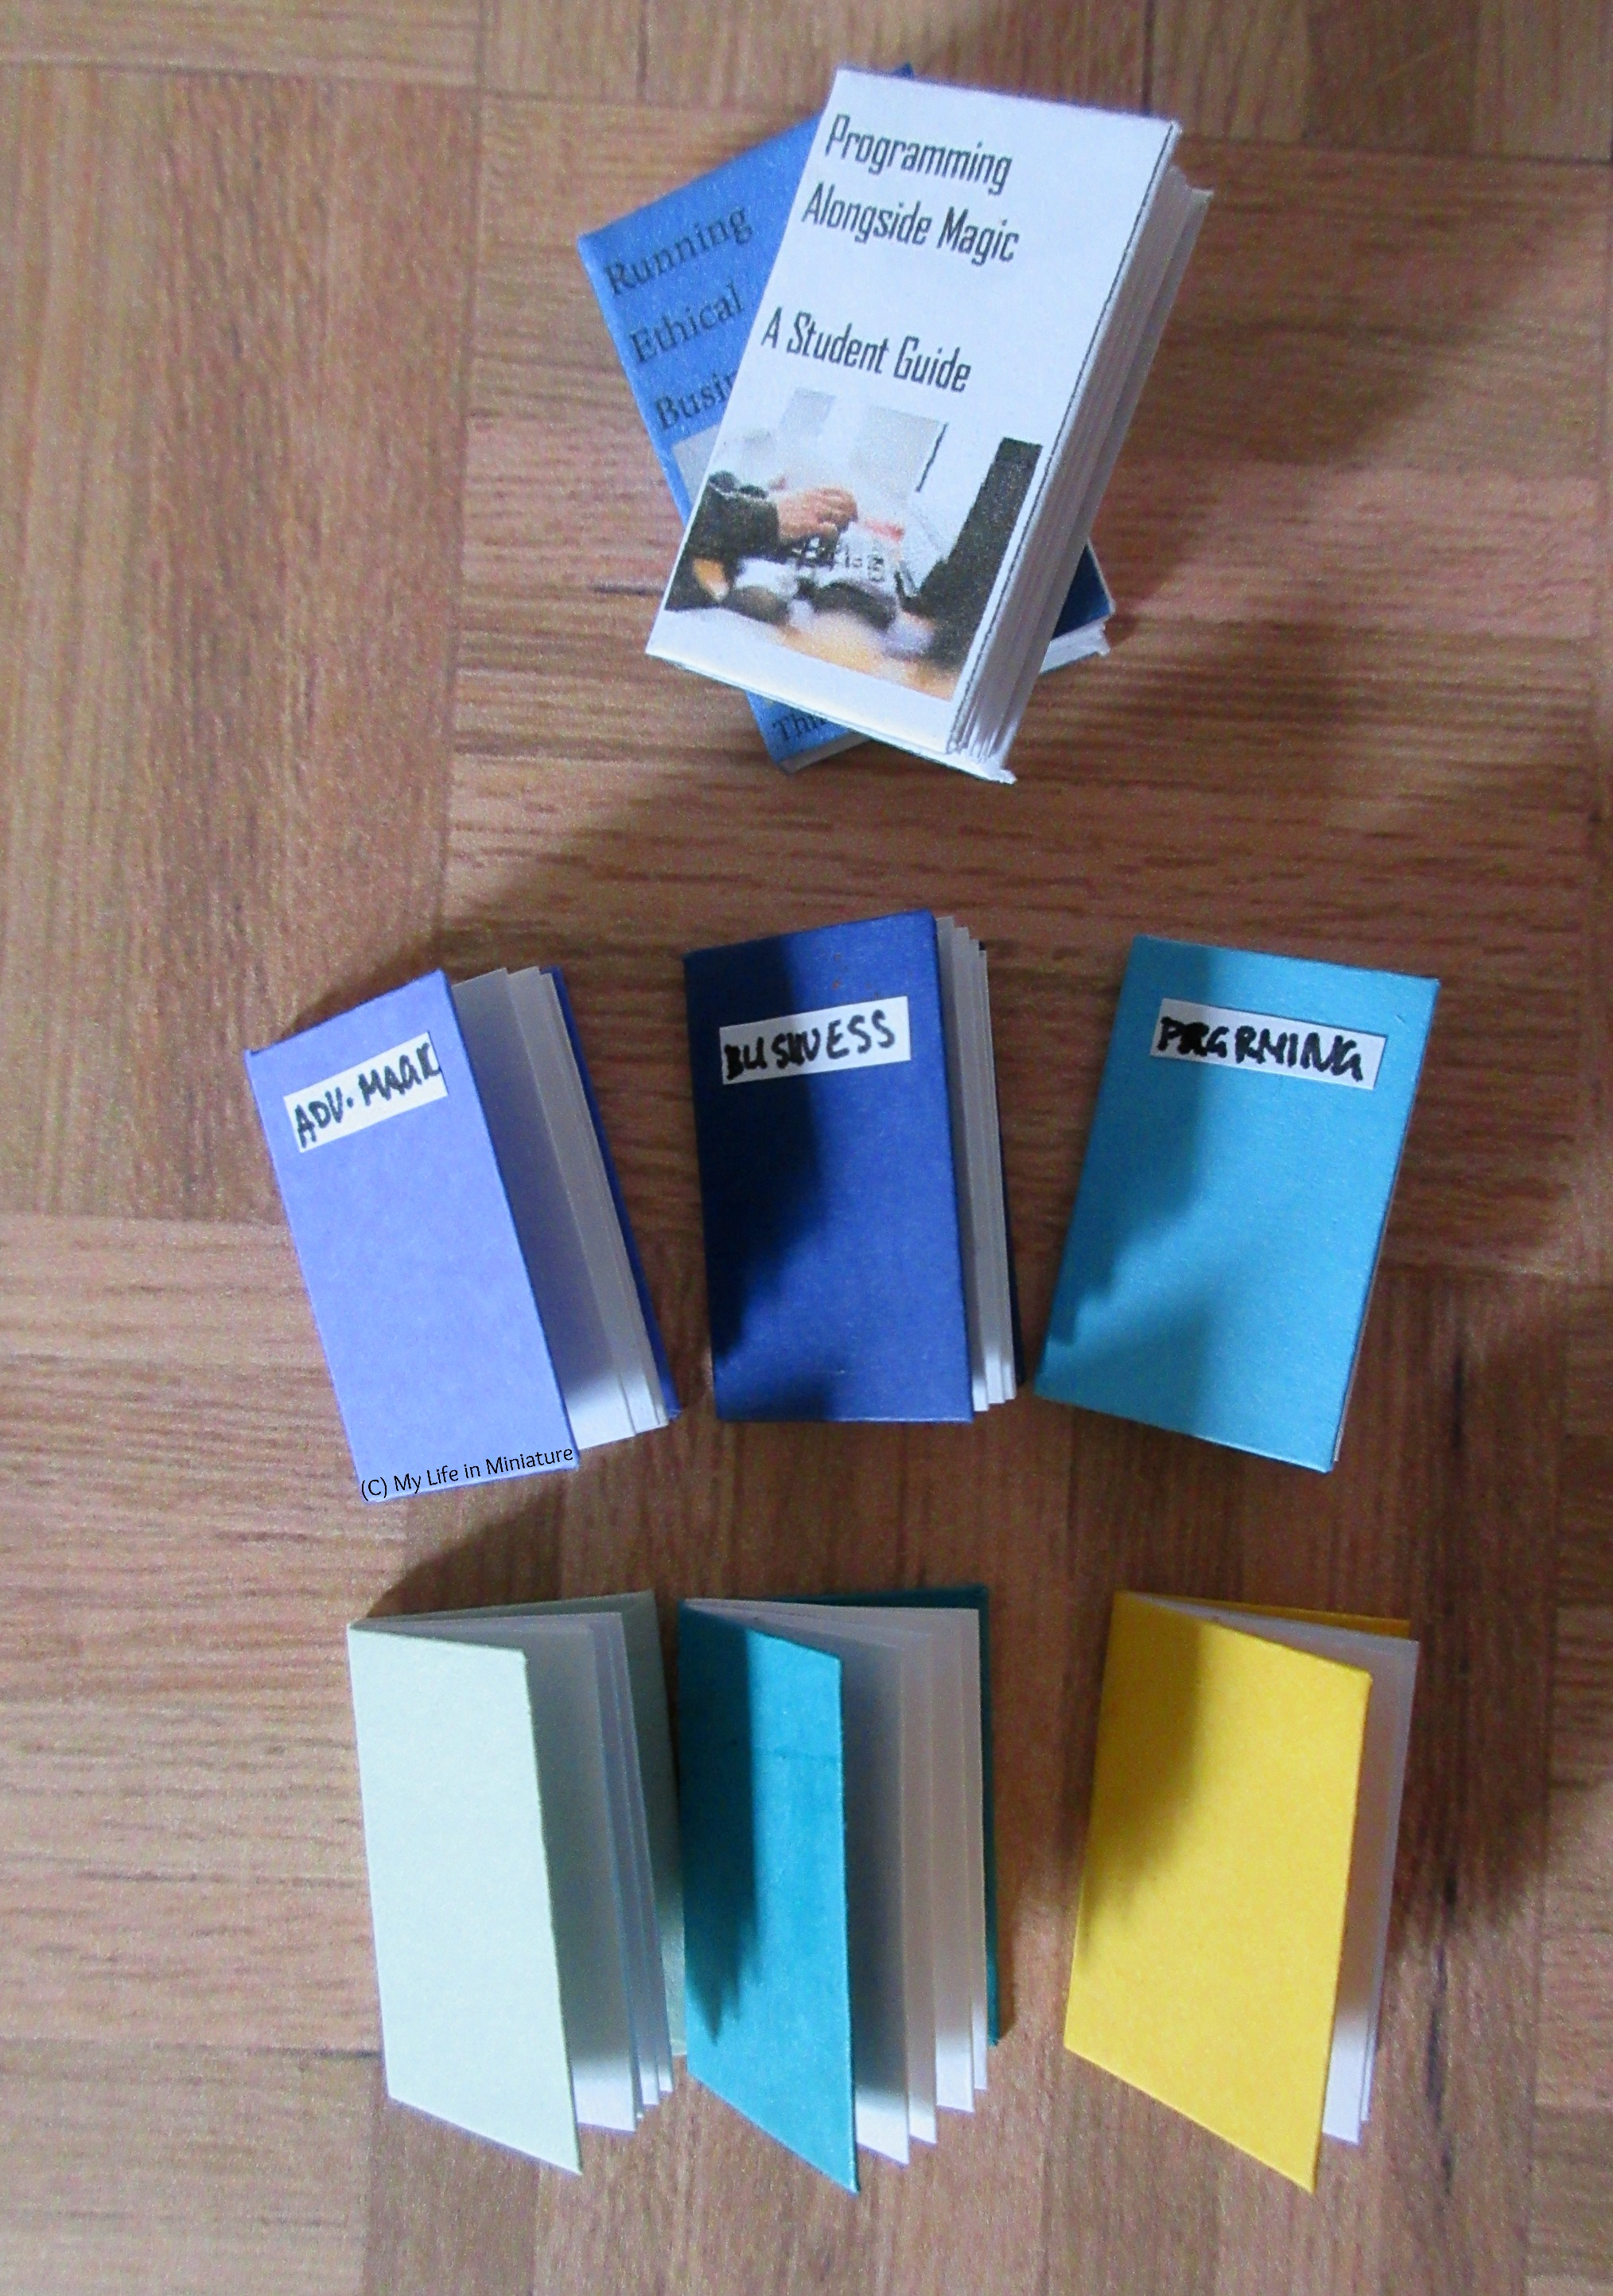 Six notebooks sit on a wood parquet background. They are various shades of blue, purple, green, and yellow. Three are labelled with different subjects. Two textbooks are above the notebooks for scale.